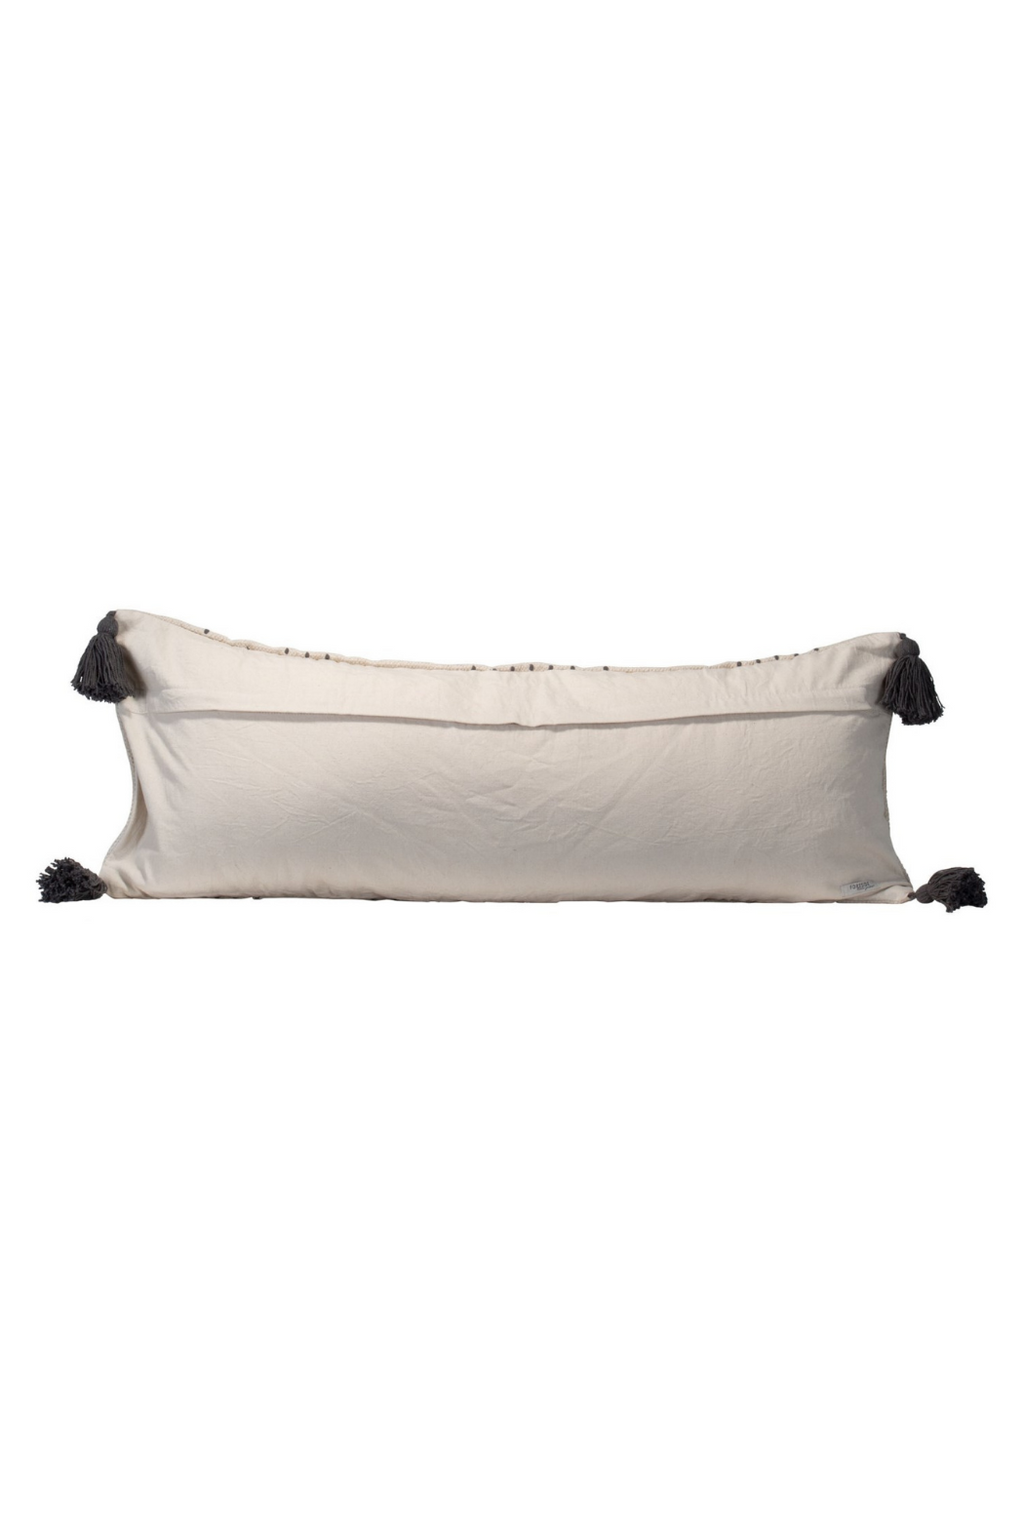 Foreside Home & Garden Hand-Woven Ravi Pillow in Grey